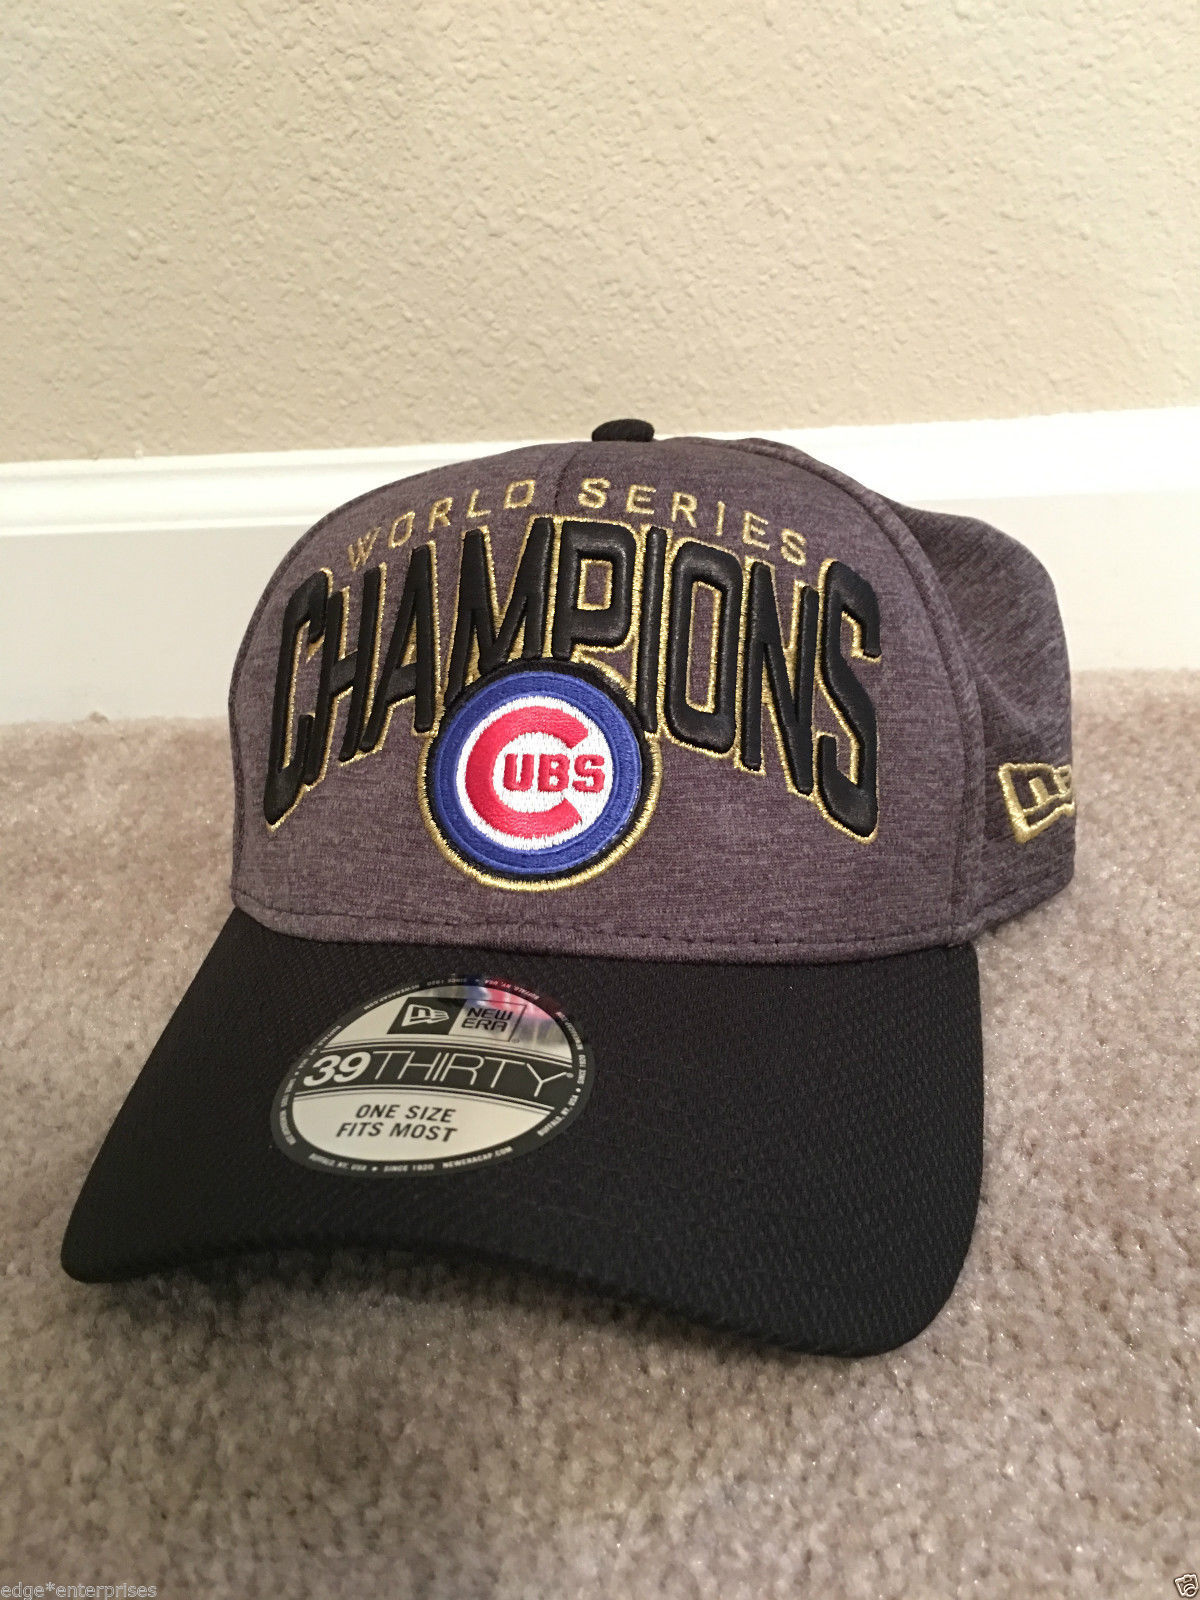 0e7651472b6 S l1600. S l1600. Previous. Official 2016 World Series Champions New Era  39THIRTY Hat Chicago Cubs SOLD OUT · Official ...